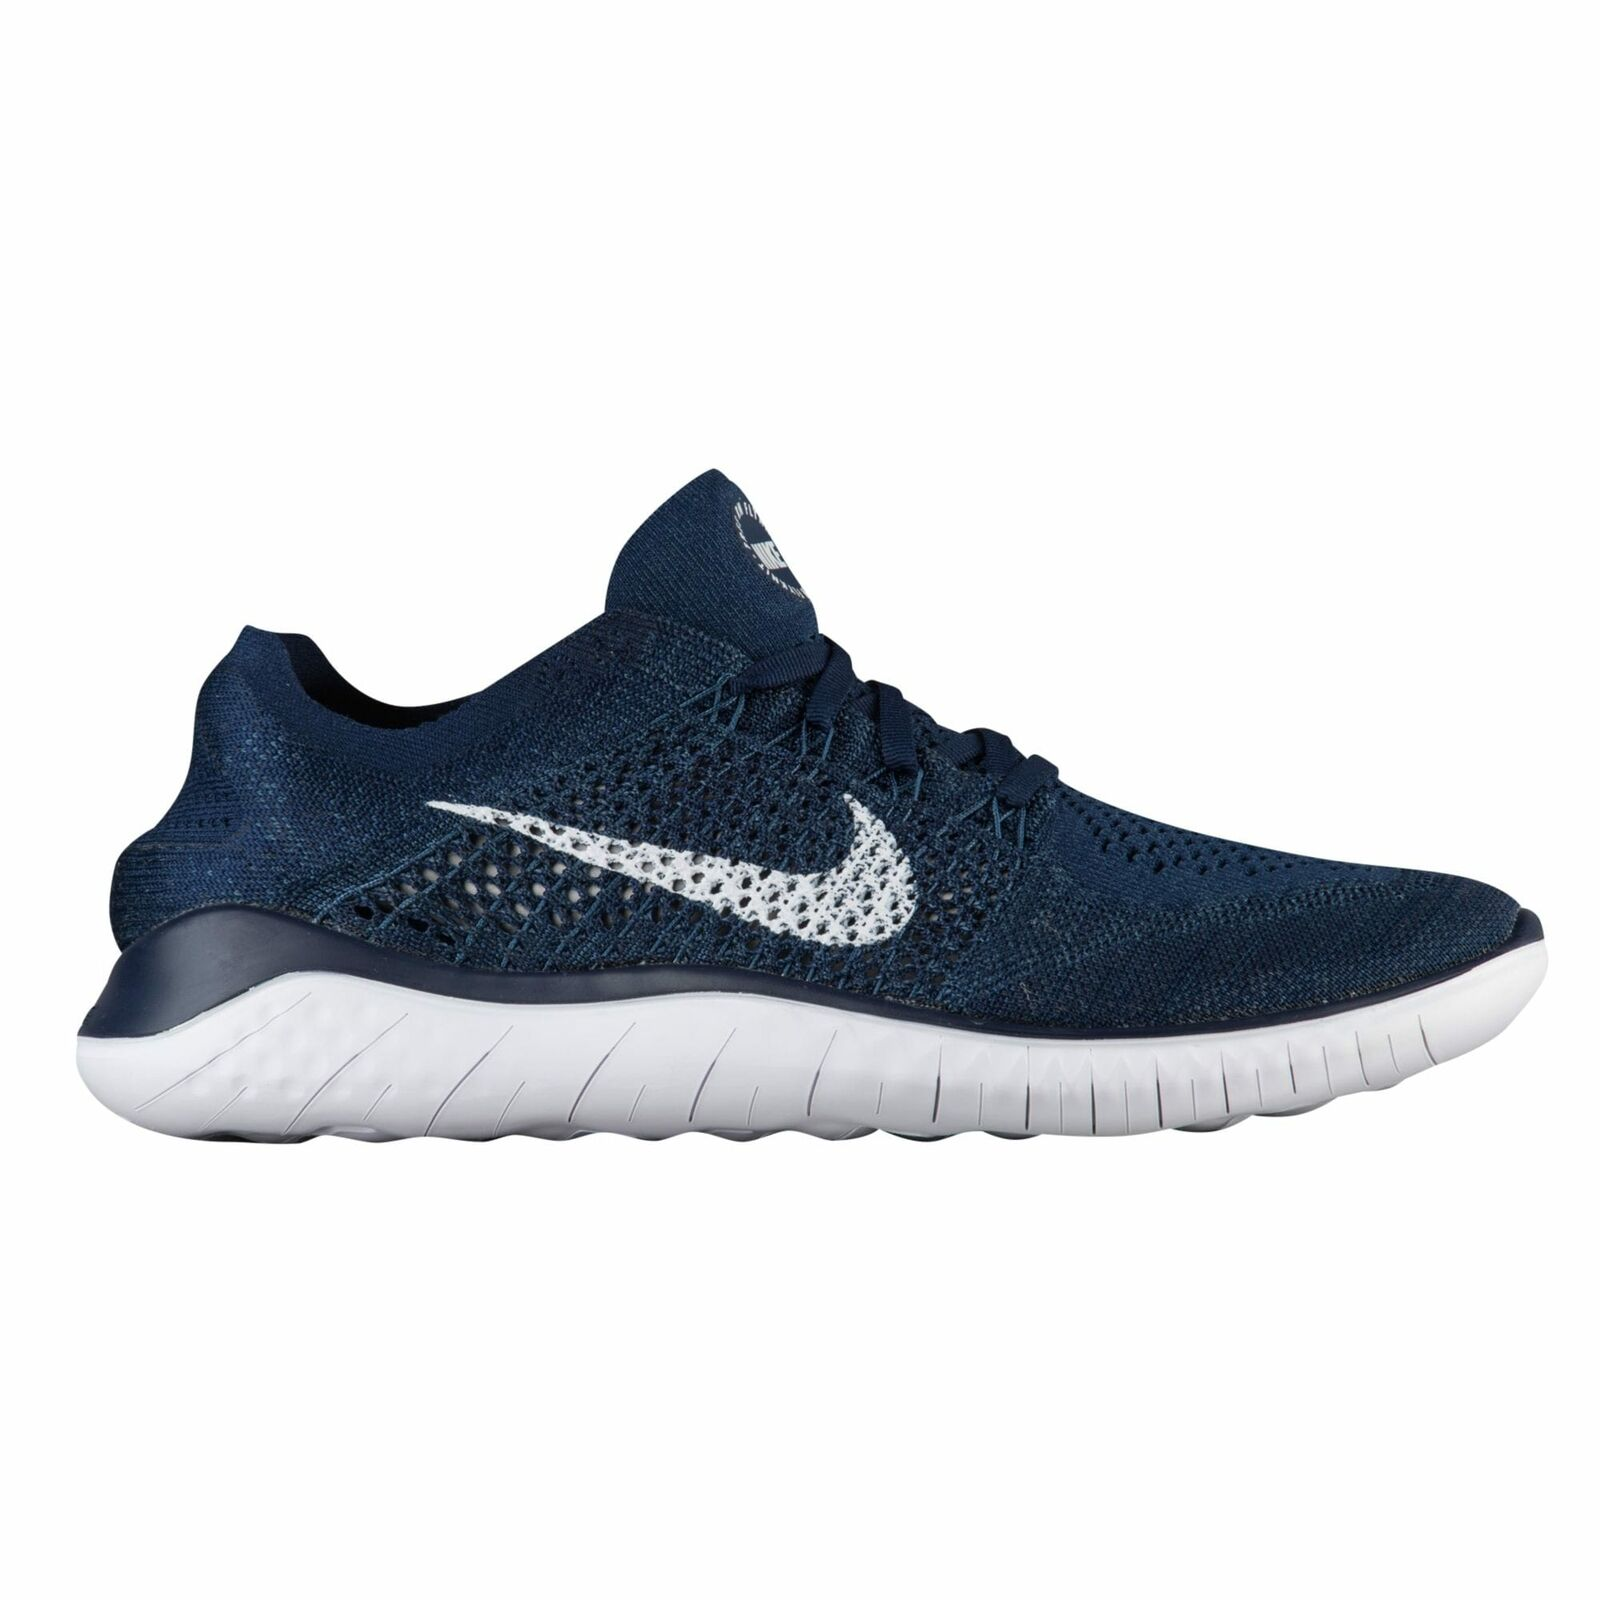 Nike Free RN Flyknit 2018 Men's College Navy White Squadron bluee 2838400